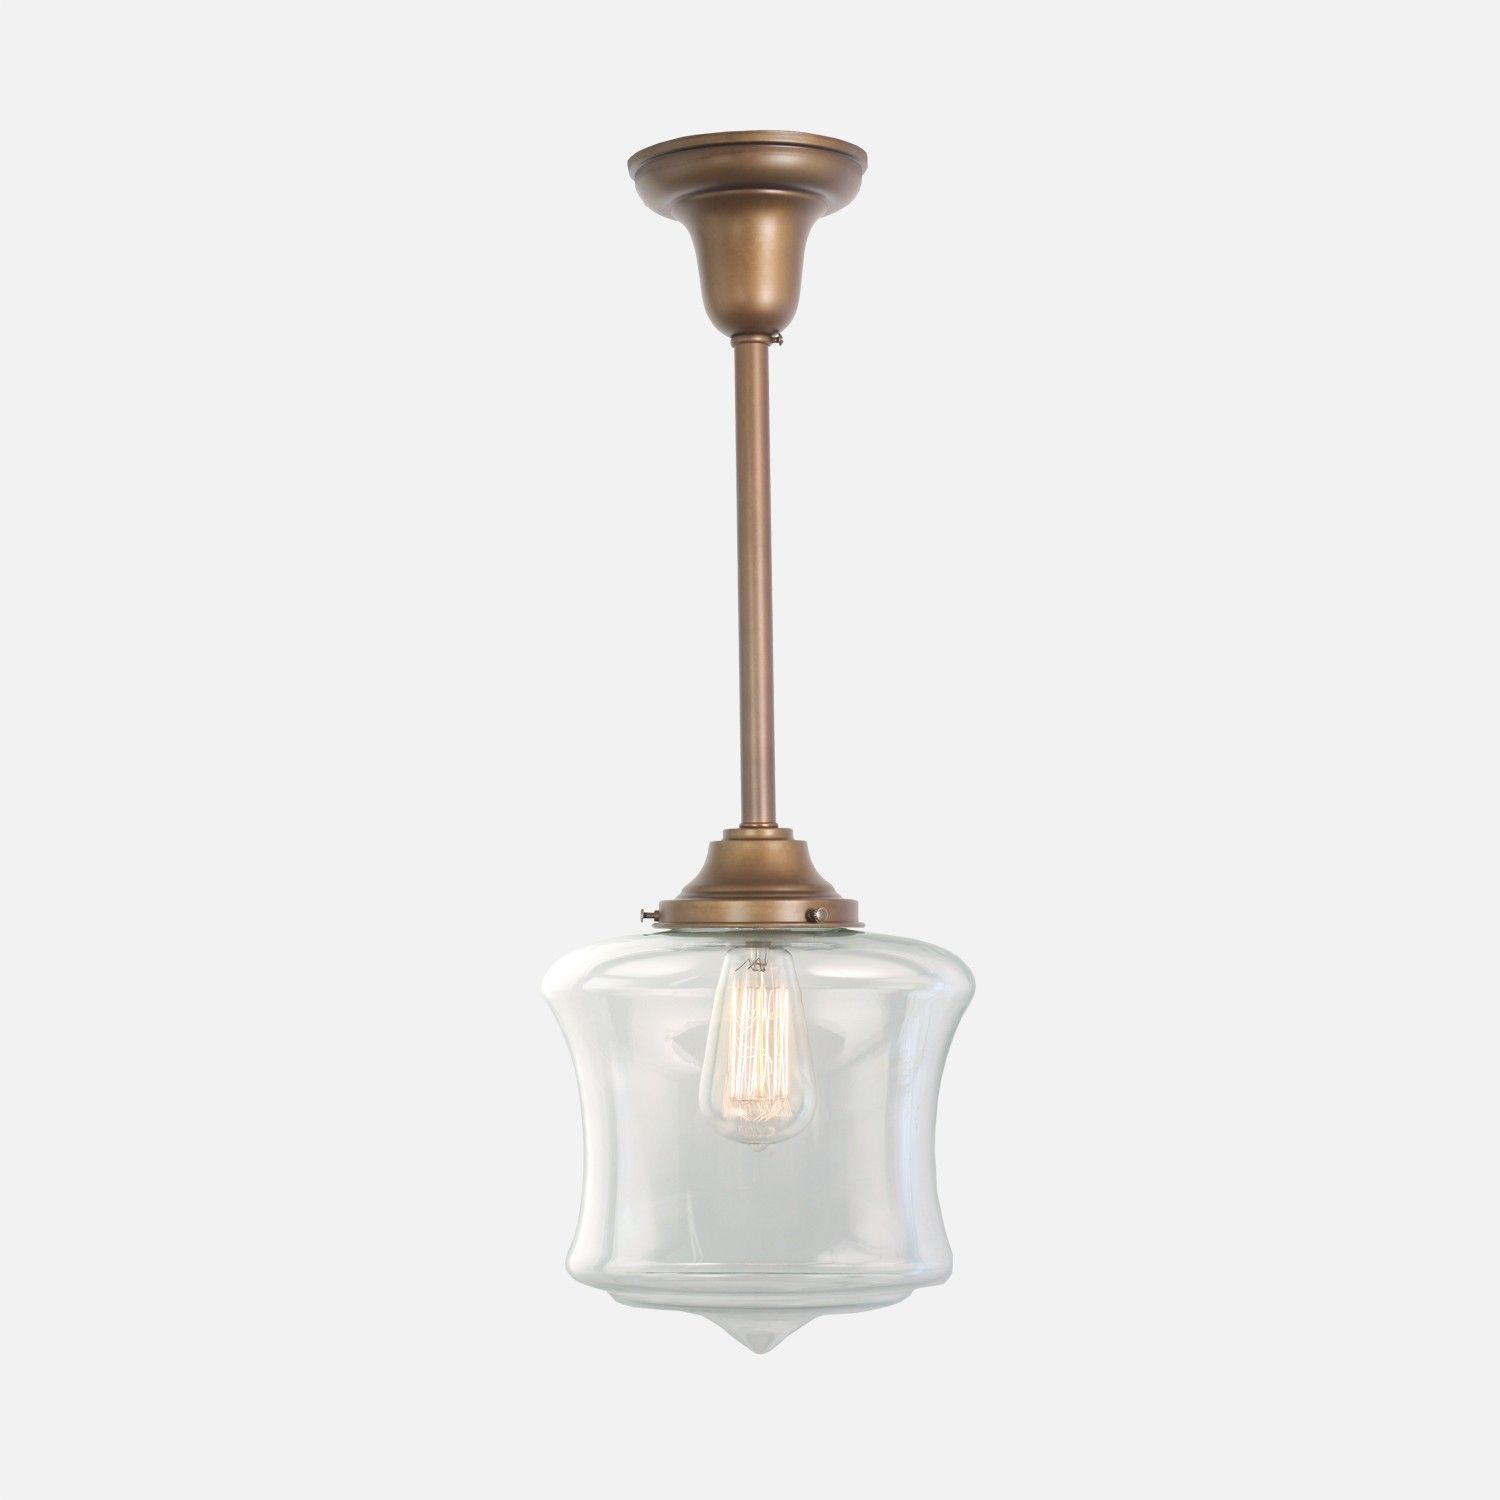 Willamette 4 Pendant Light Fixture Schoolhouse Electric Supply Co Pendants For Kitchen Island Love